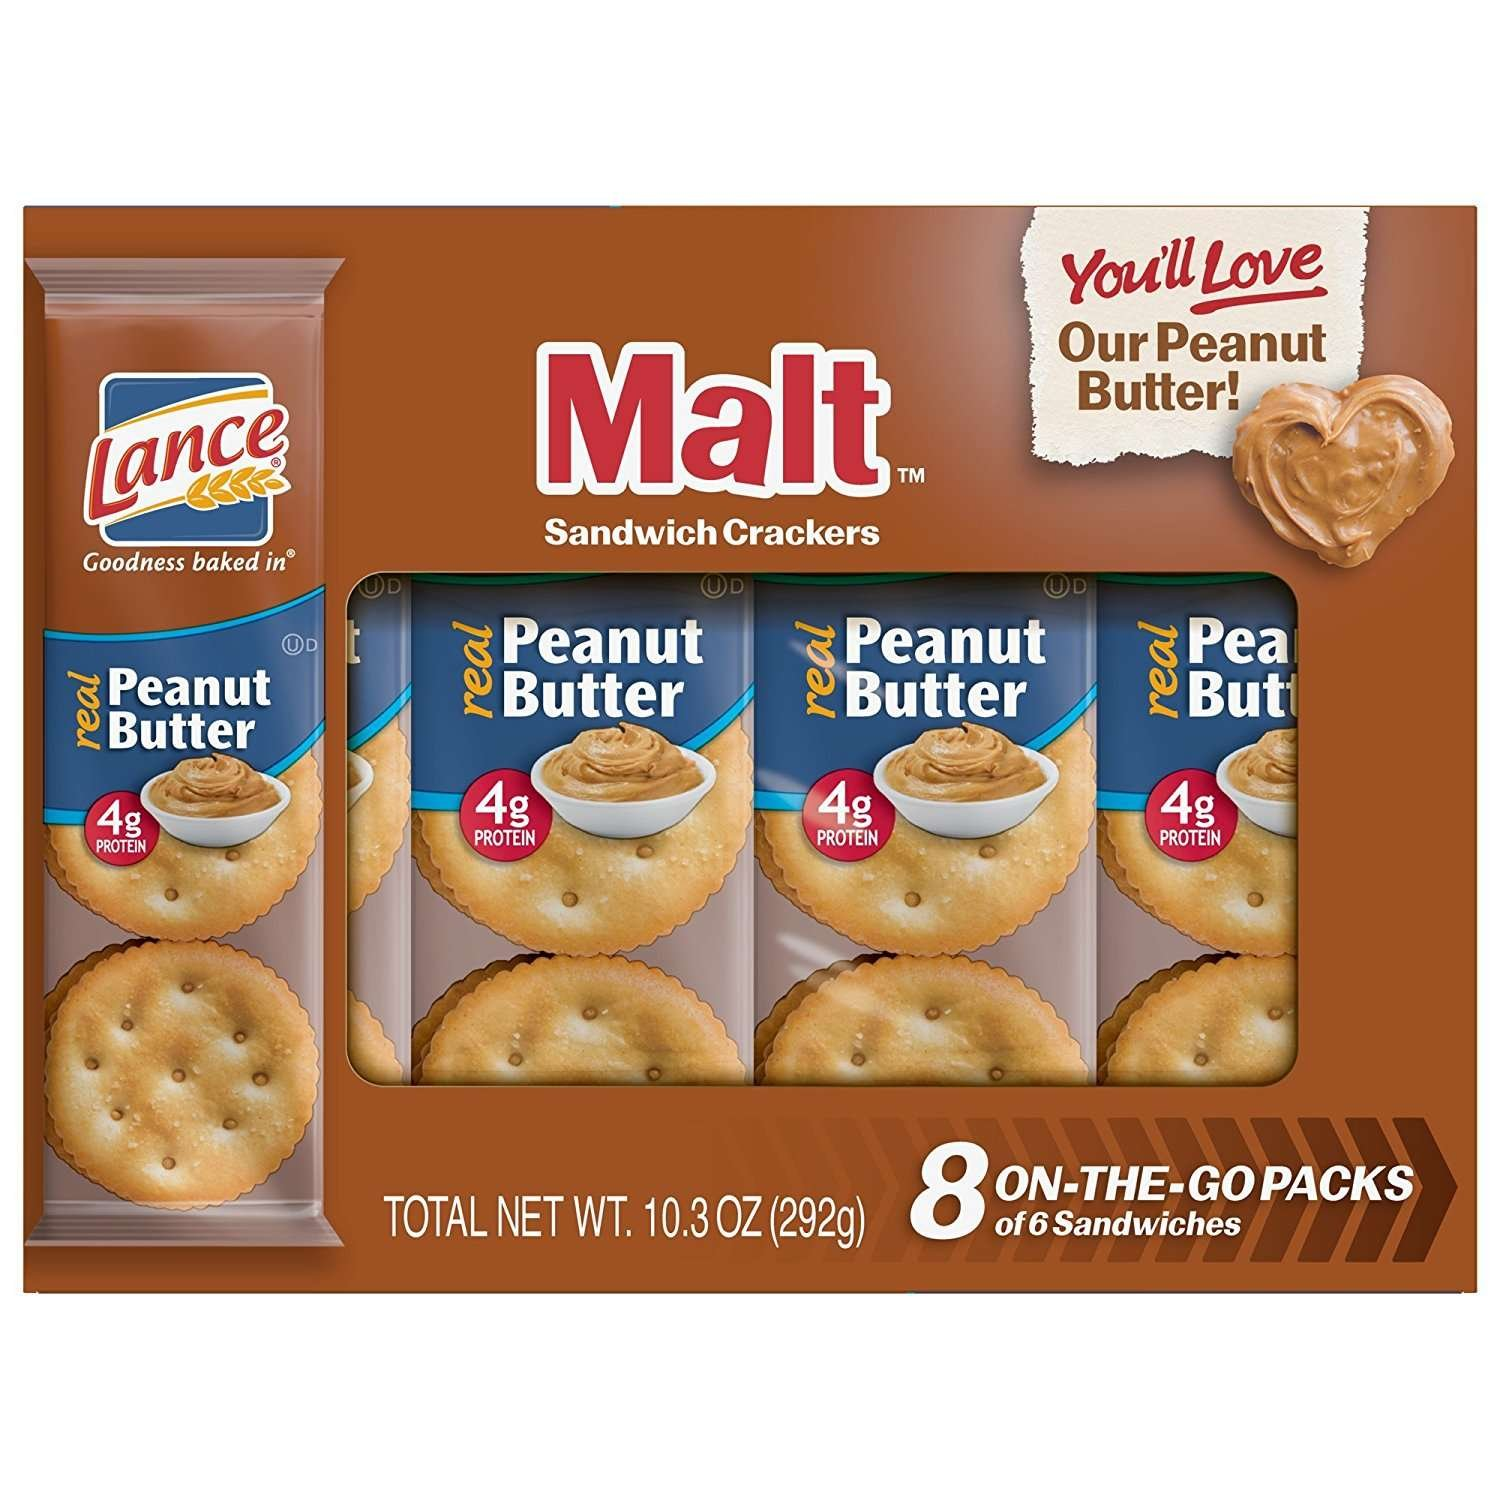 Lance Sandwich Crackers, Malt with Peanut Butter, 8-Count Boxes (Pack of 14)